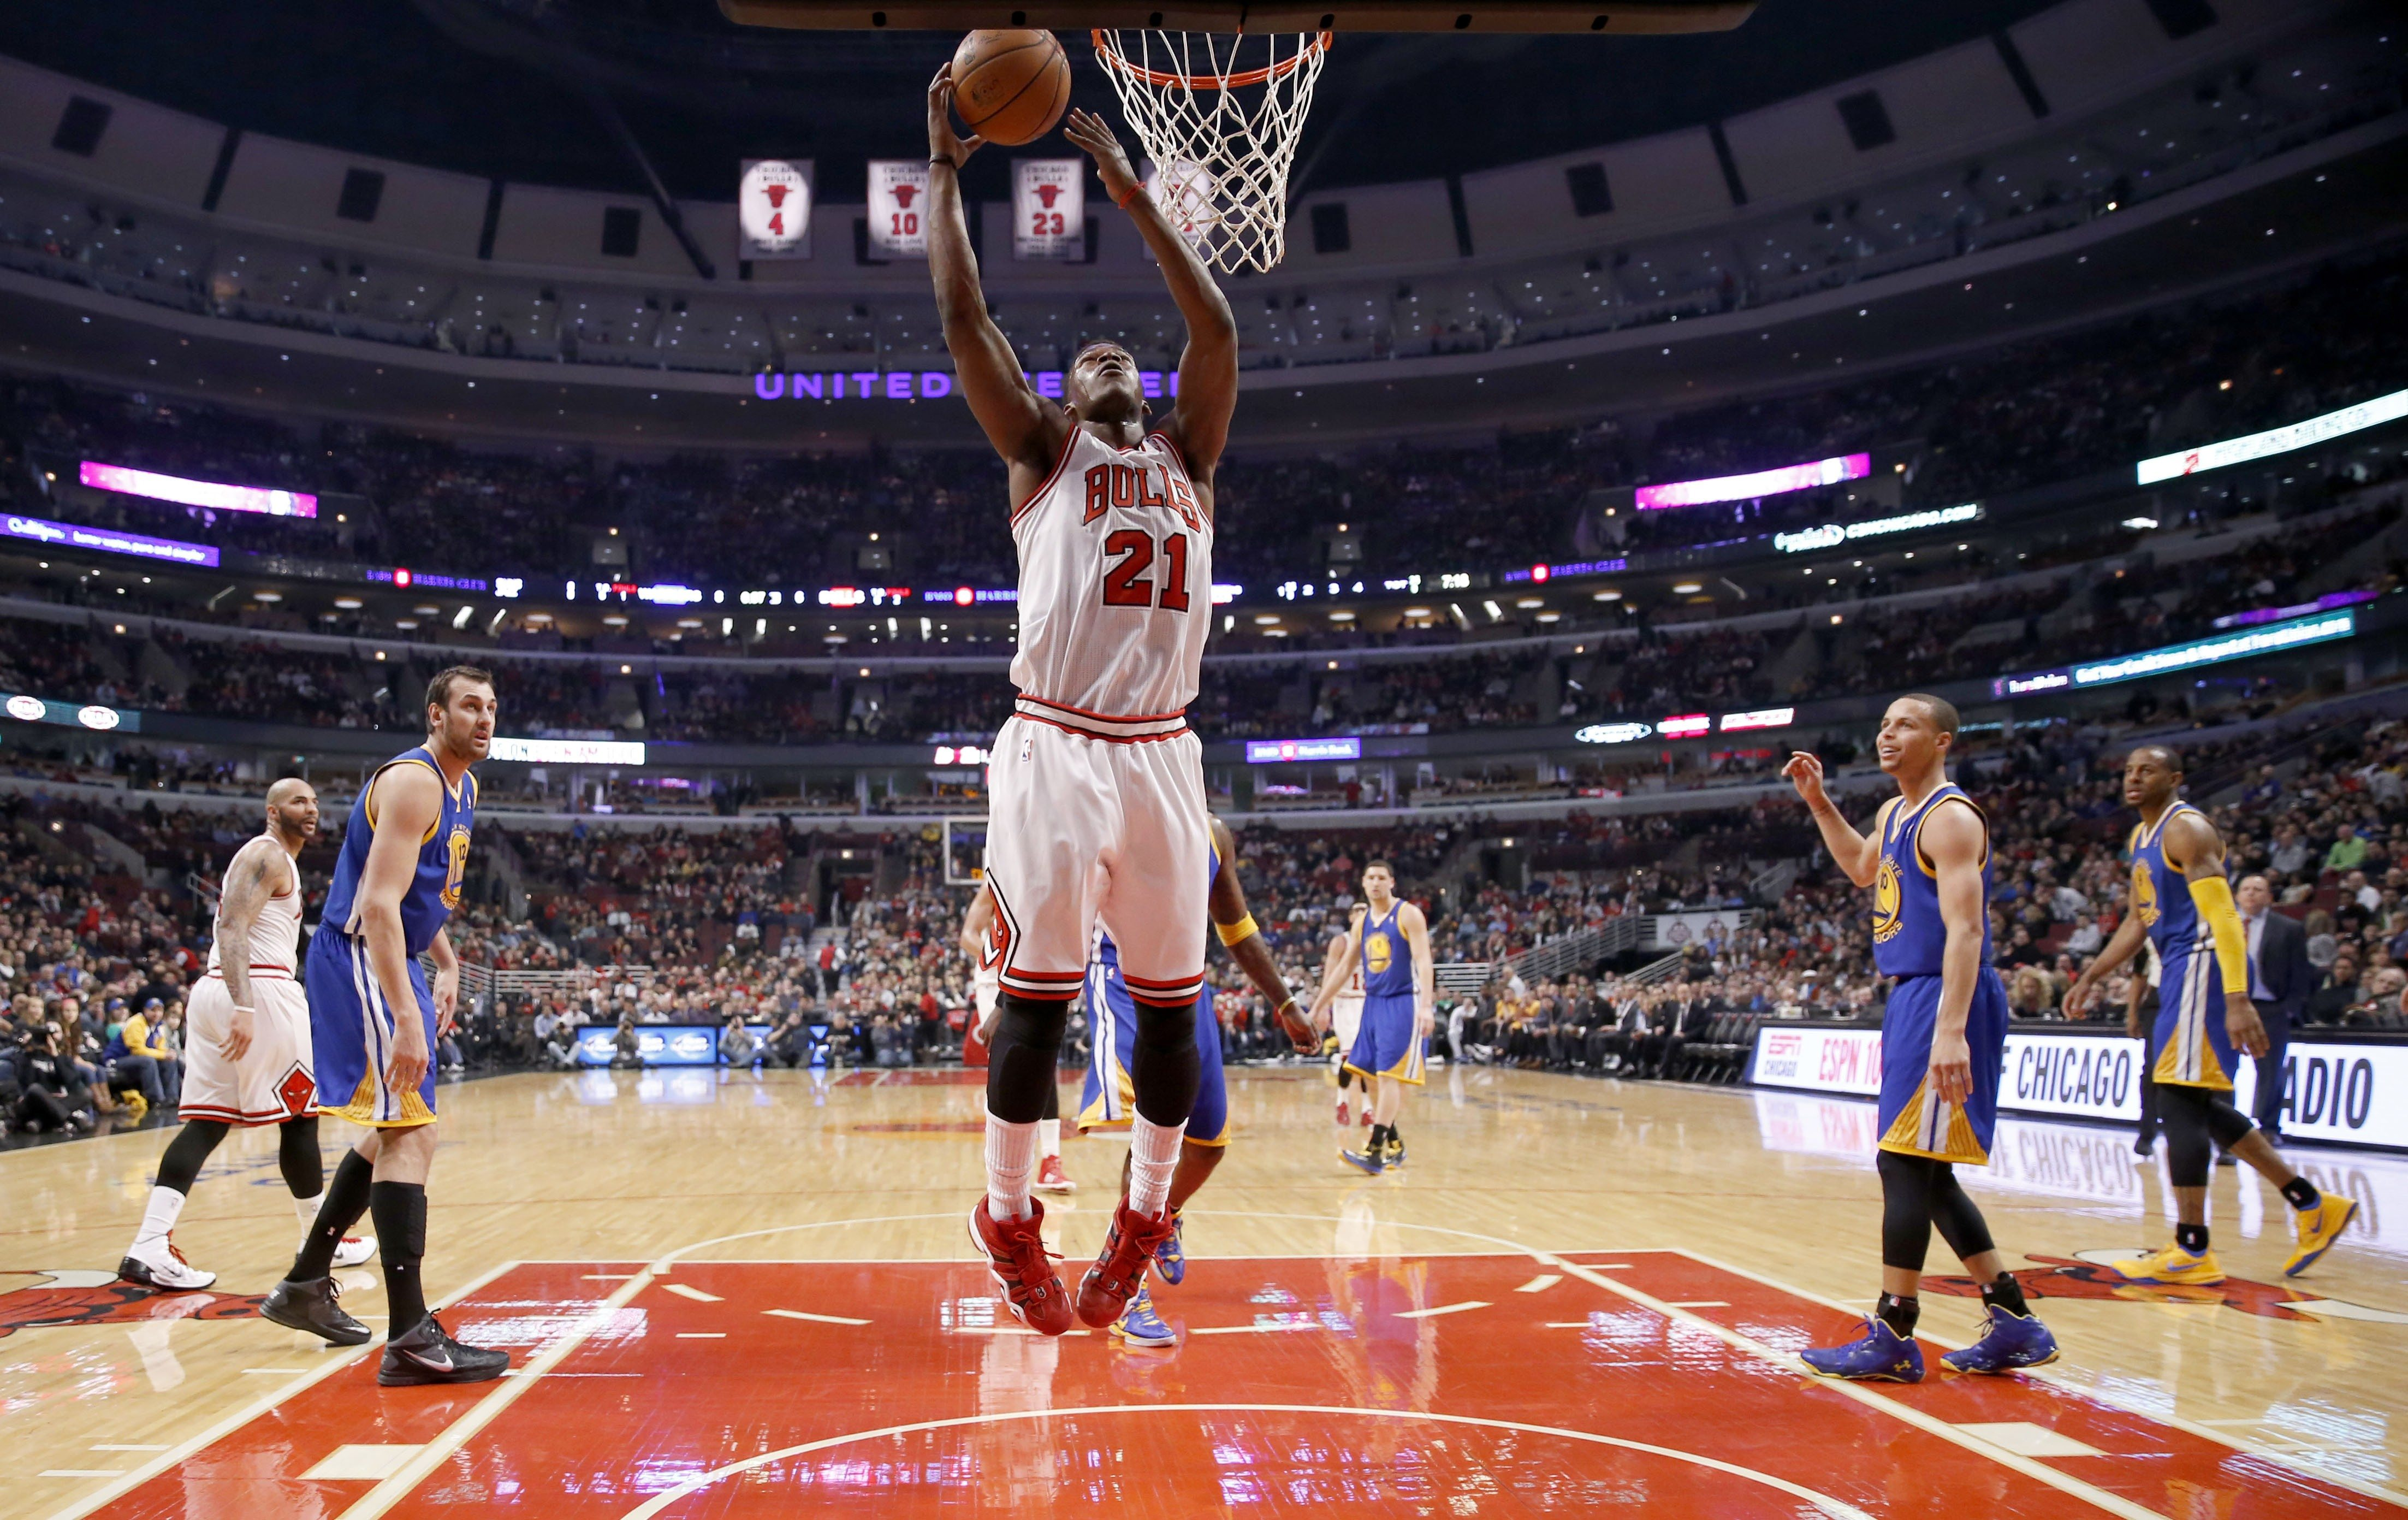 AP Photo/Charles Rex ArbogastChicago Bulls shooting guard Jimmy Butler (21) scores during the first half of an NBA basketball game against the Golden State Warriors